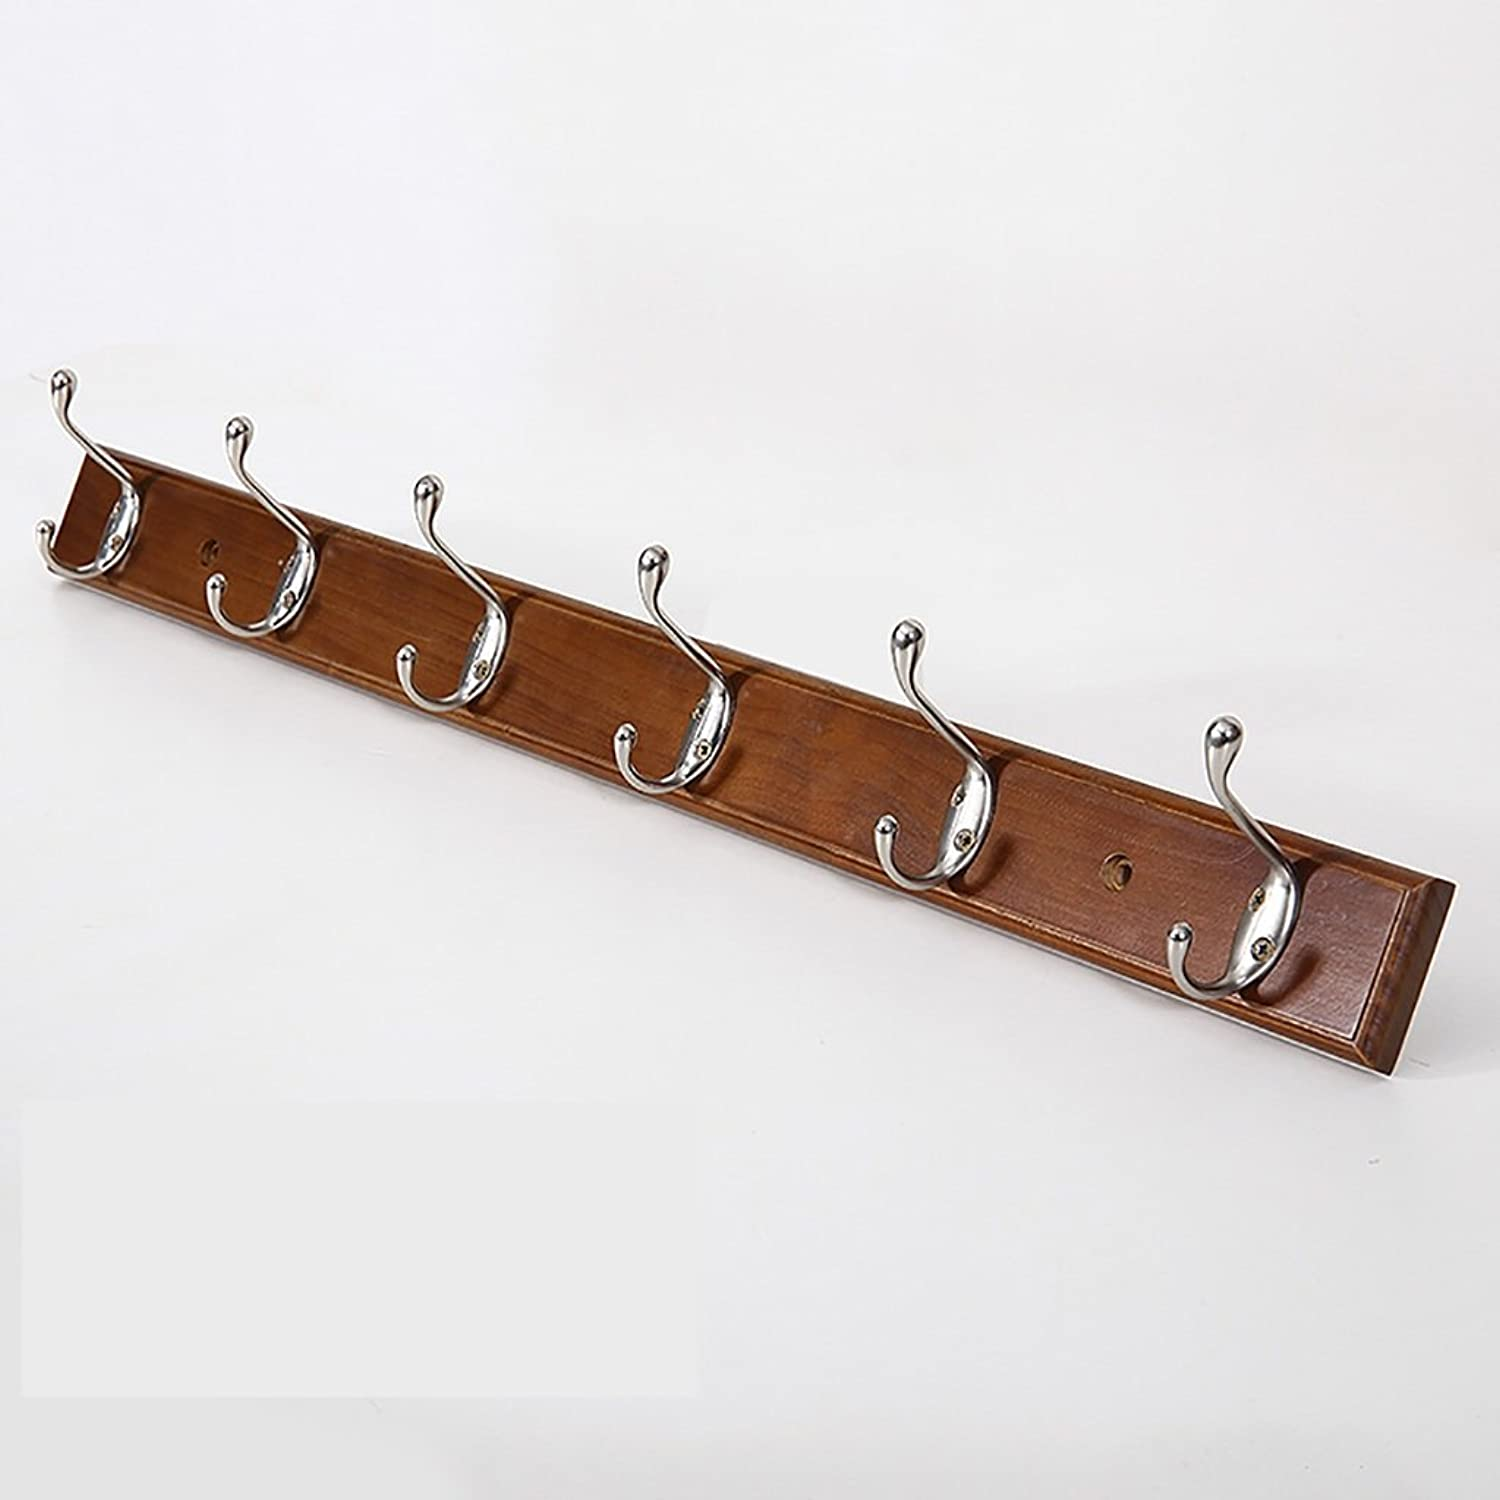 Coat Rack Creative Door Wall Clothes Hooks Wall Hooks Hooks Solid Wood Walls Hooks Hooks Hooks Hooks Walls Wall Hooks